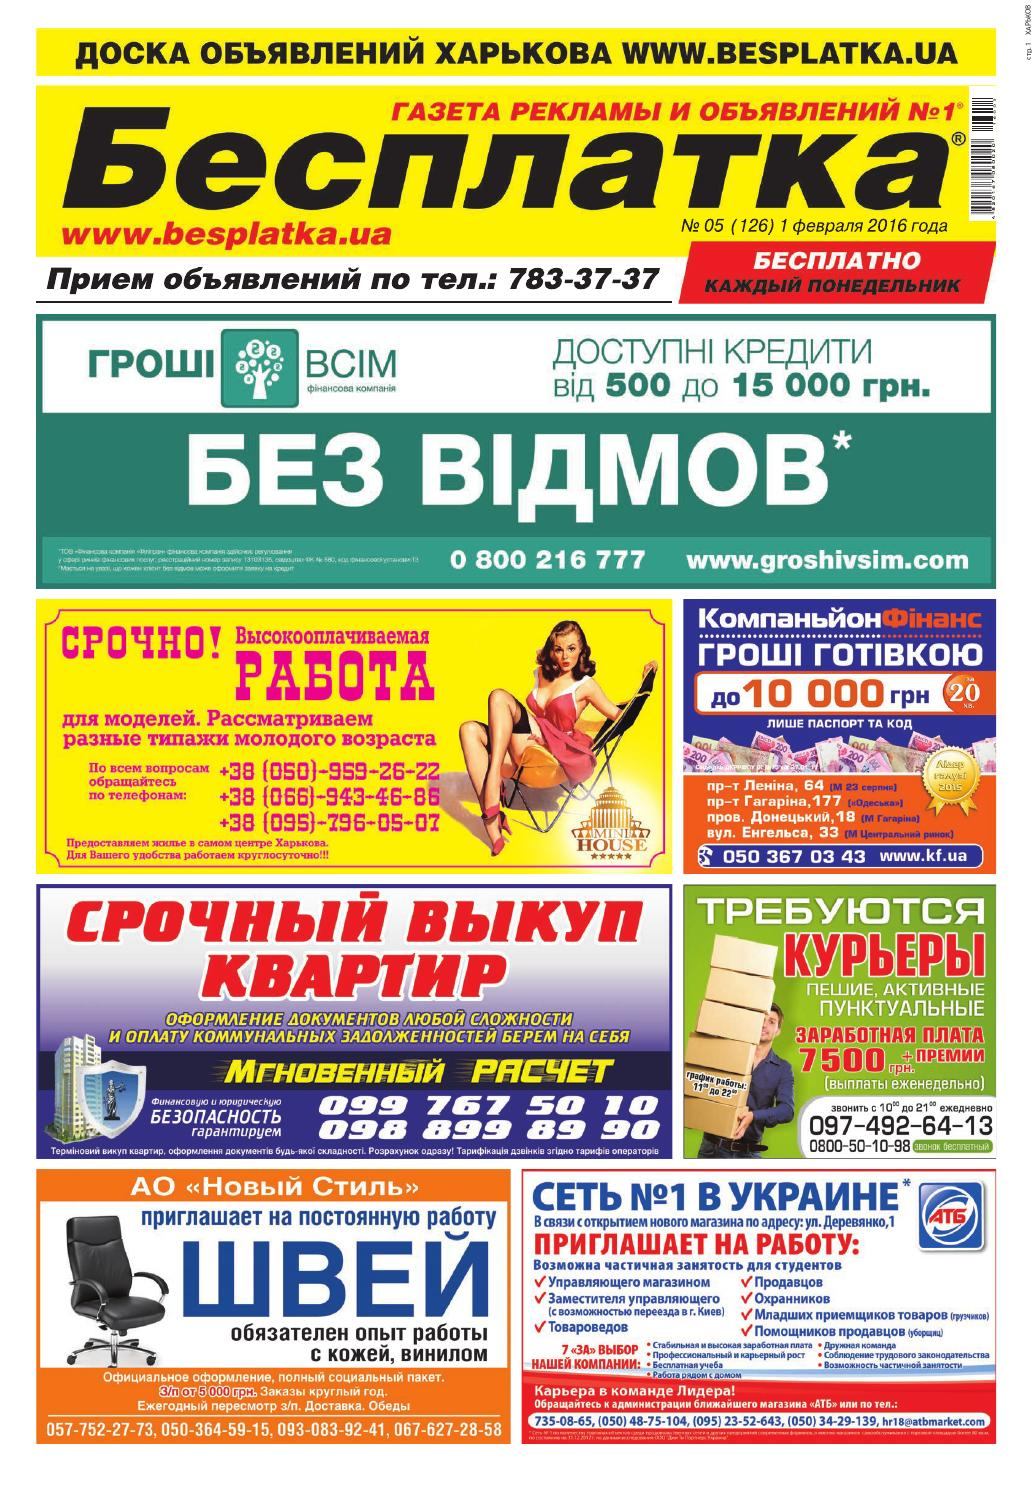 Besplatka  05 Харьков by besplatka ukraine - issuu a27405aca0c